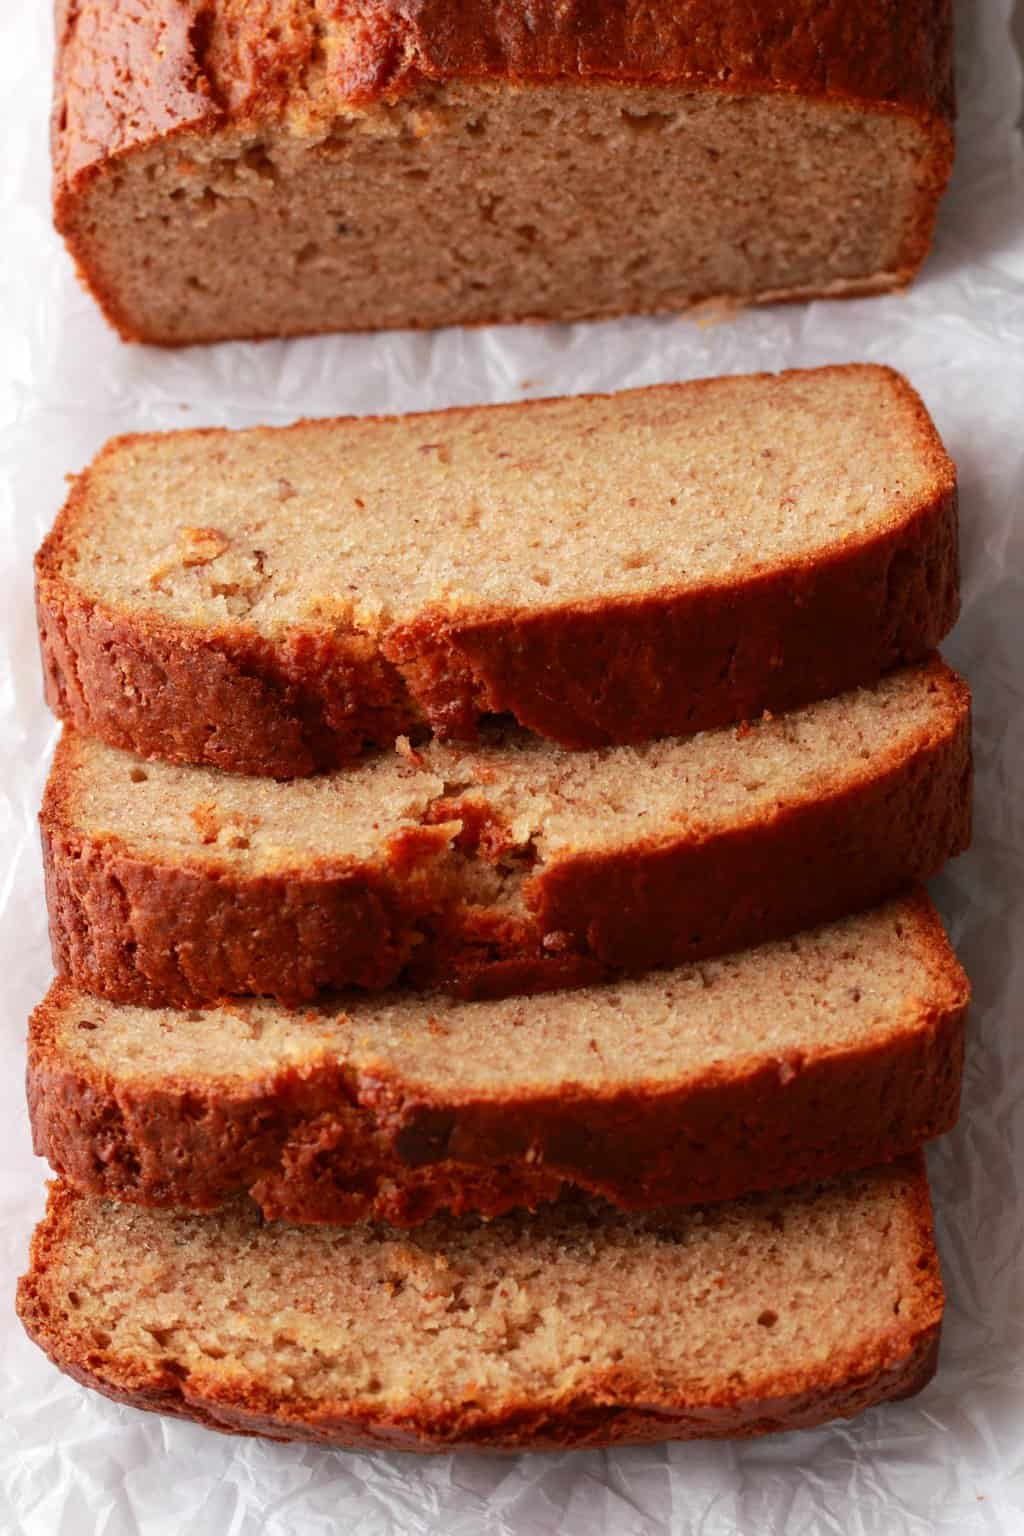 Sliced Vegan Banana Bread on parchment paper.